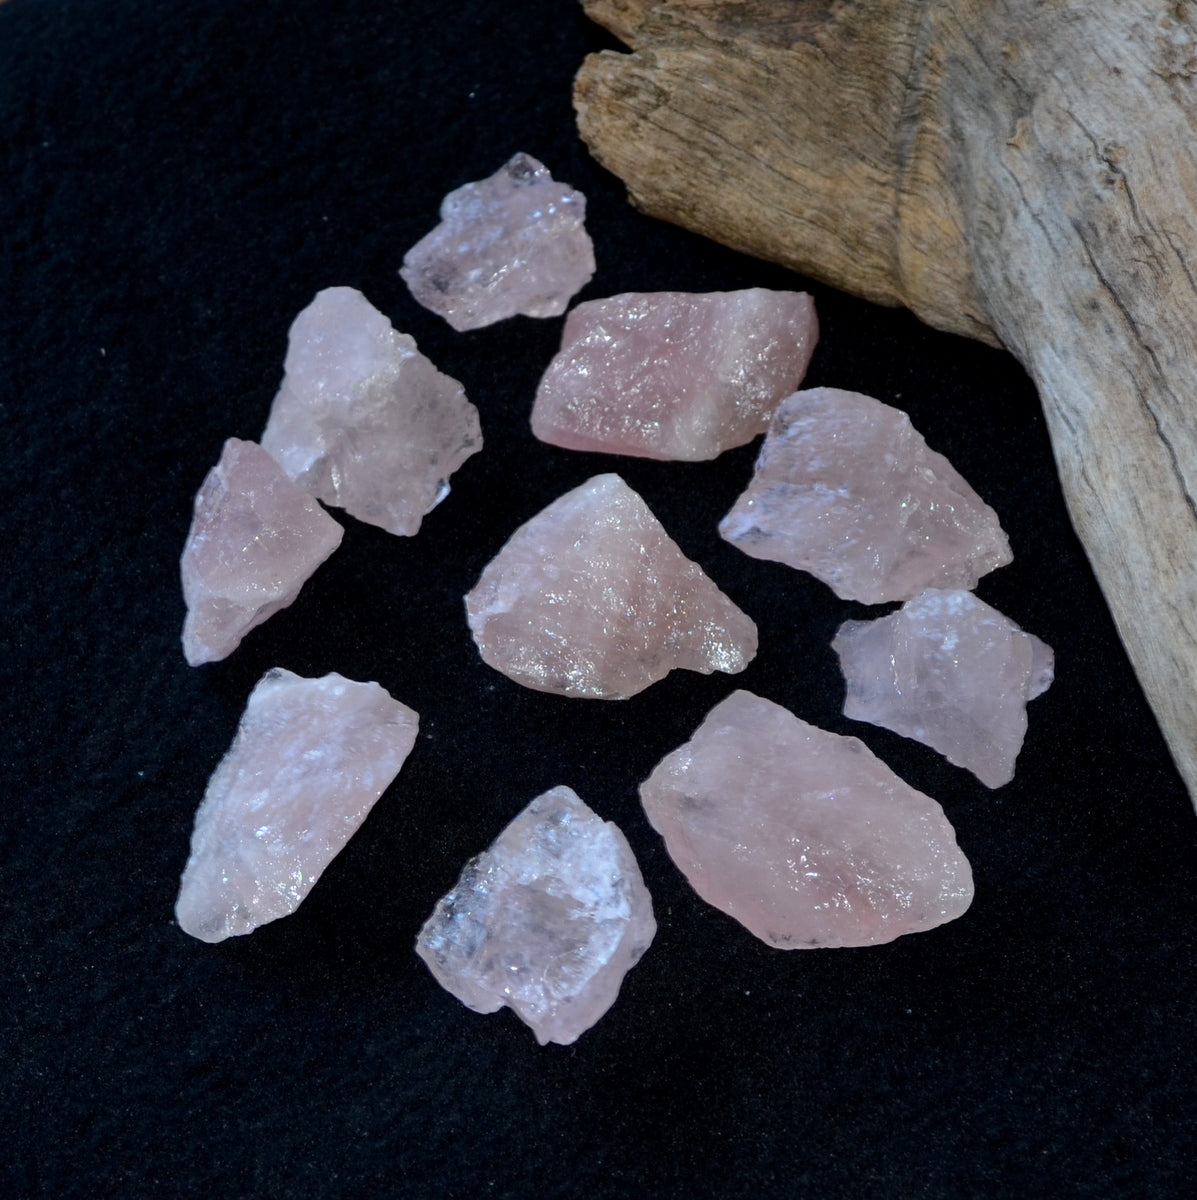 Rose Quartz Rough Chunks - Heart Love Compassion - Shop Now at Illiom Crystals - We have Afterpay